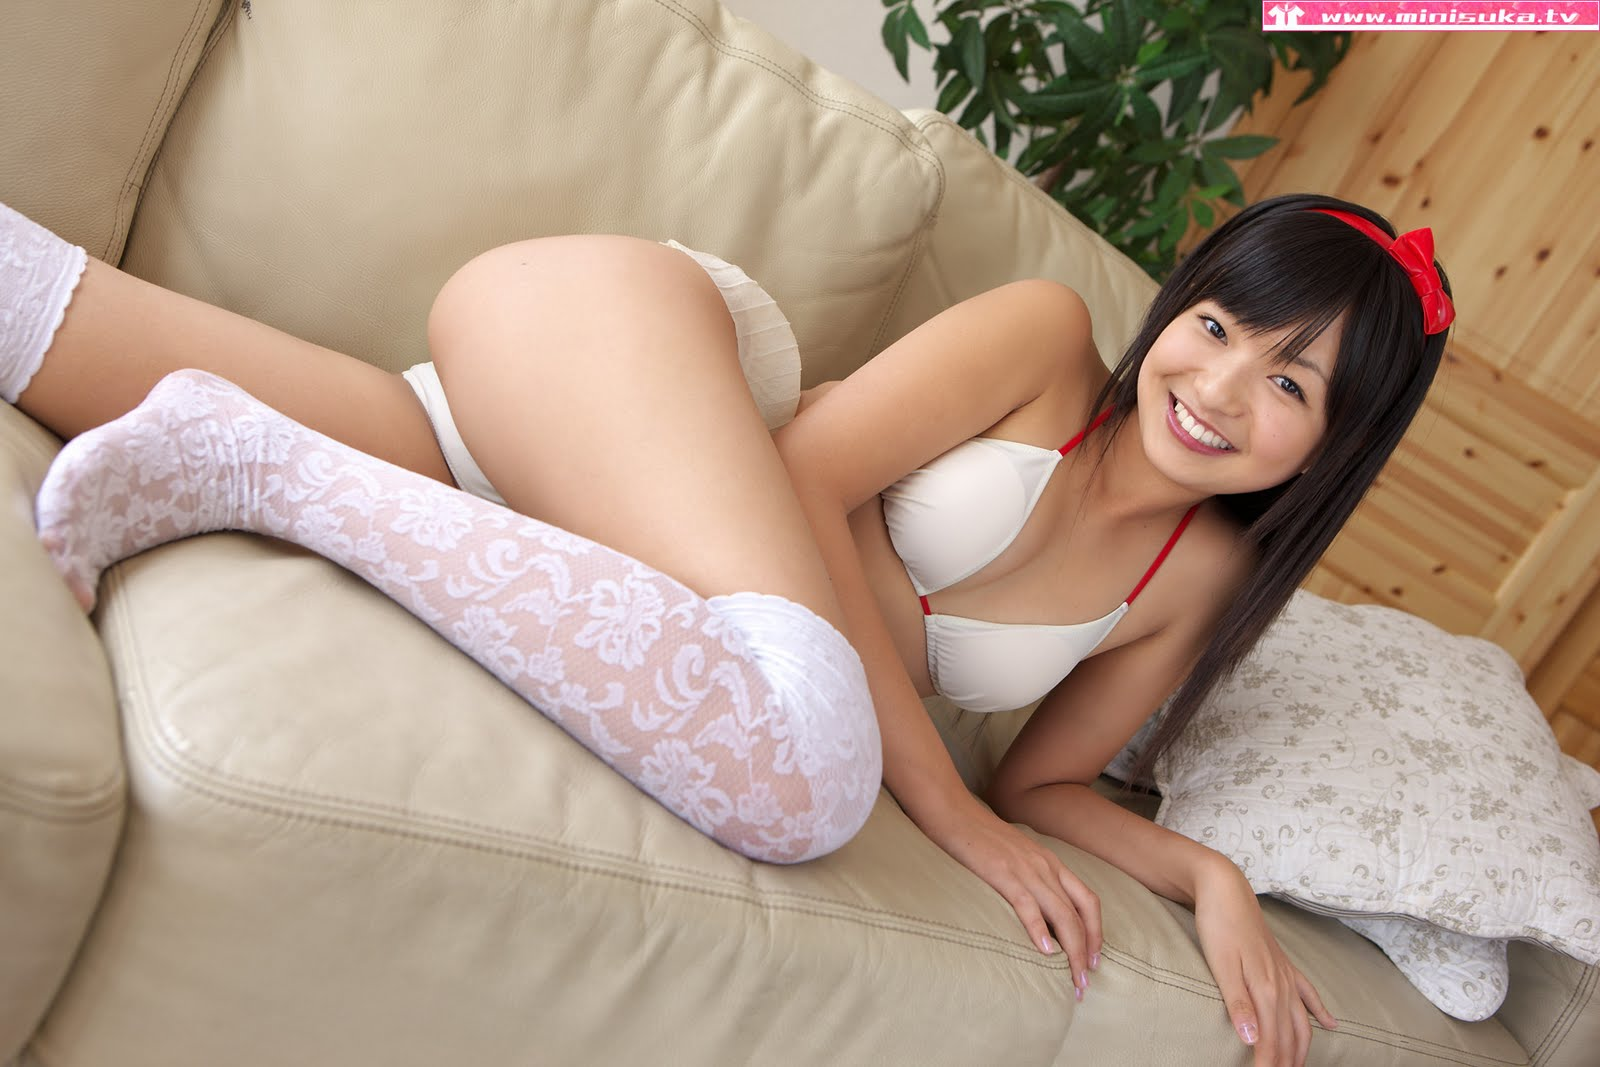 Idol Av girls junior japanese Hot